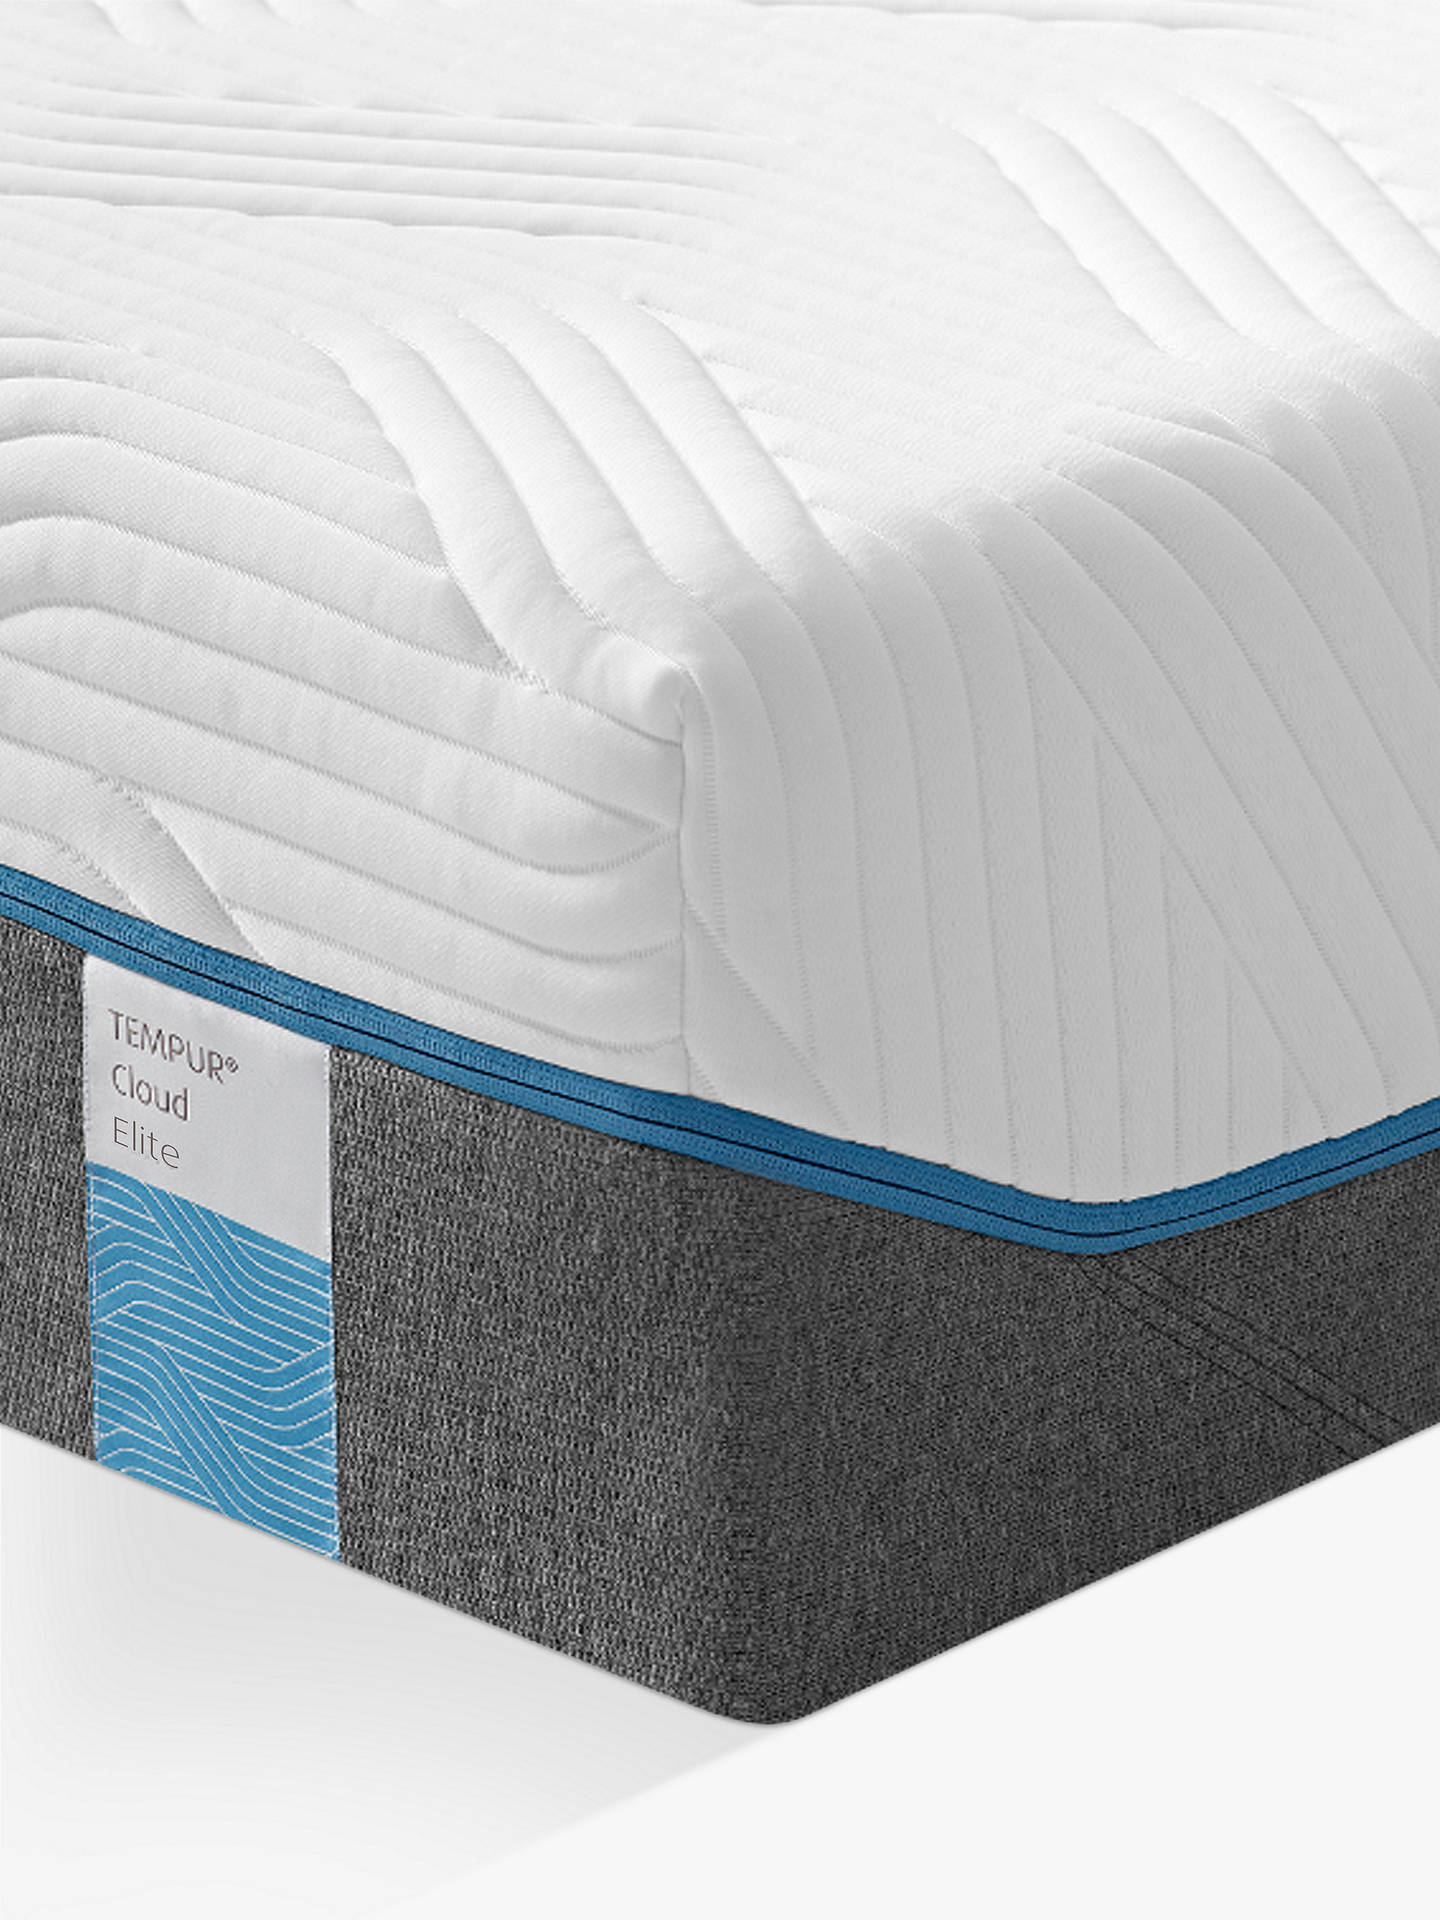 BuyTempur Cloud Elite 25 Memory Foam Mattress, Soft, King Size Online at johnlewis.com